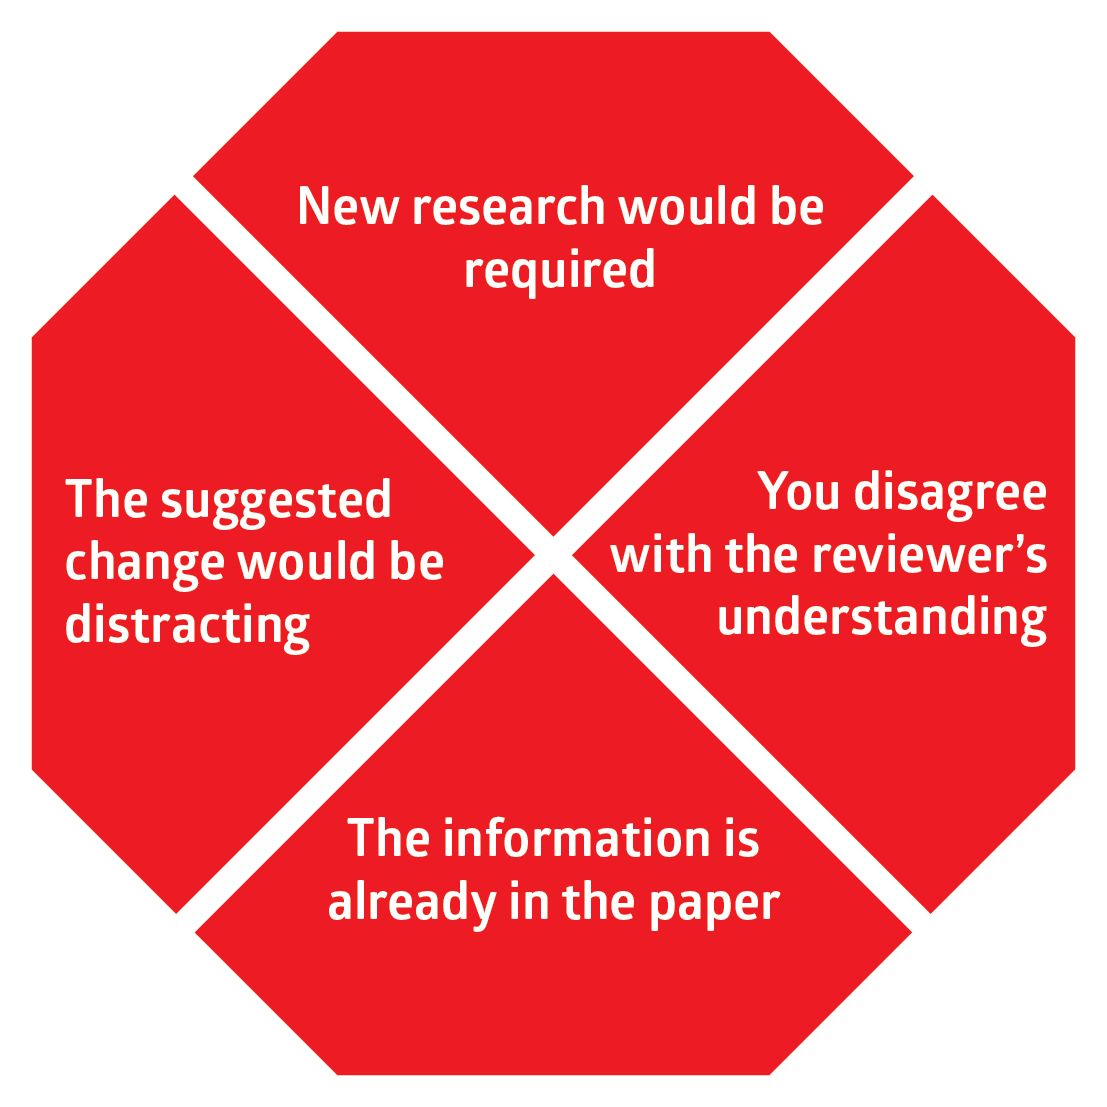 Four reasons why you might decline to make a change suggested by a reviewer